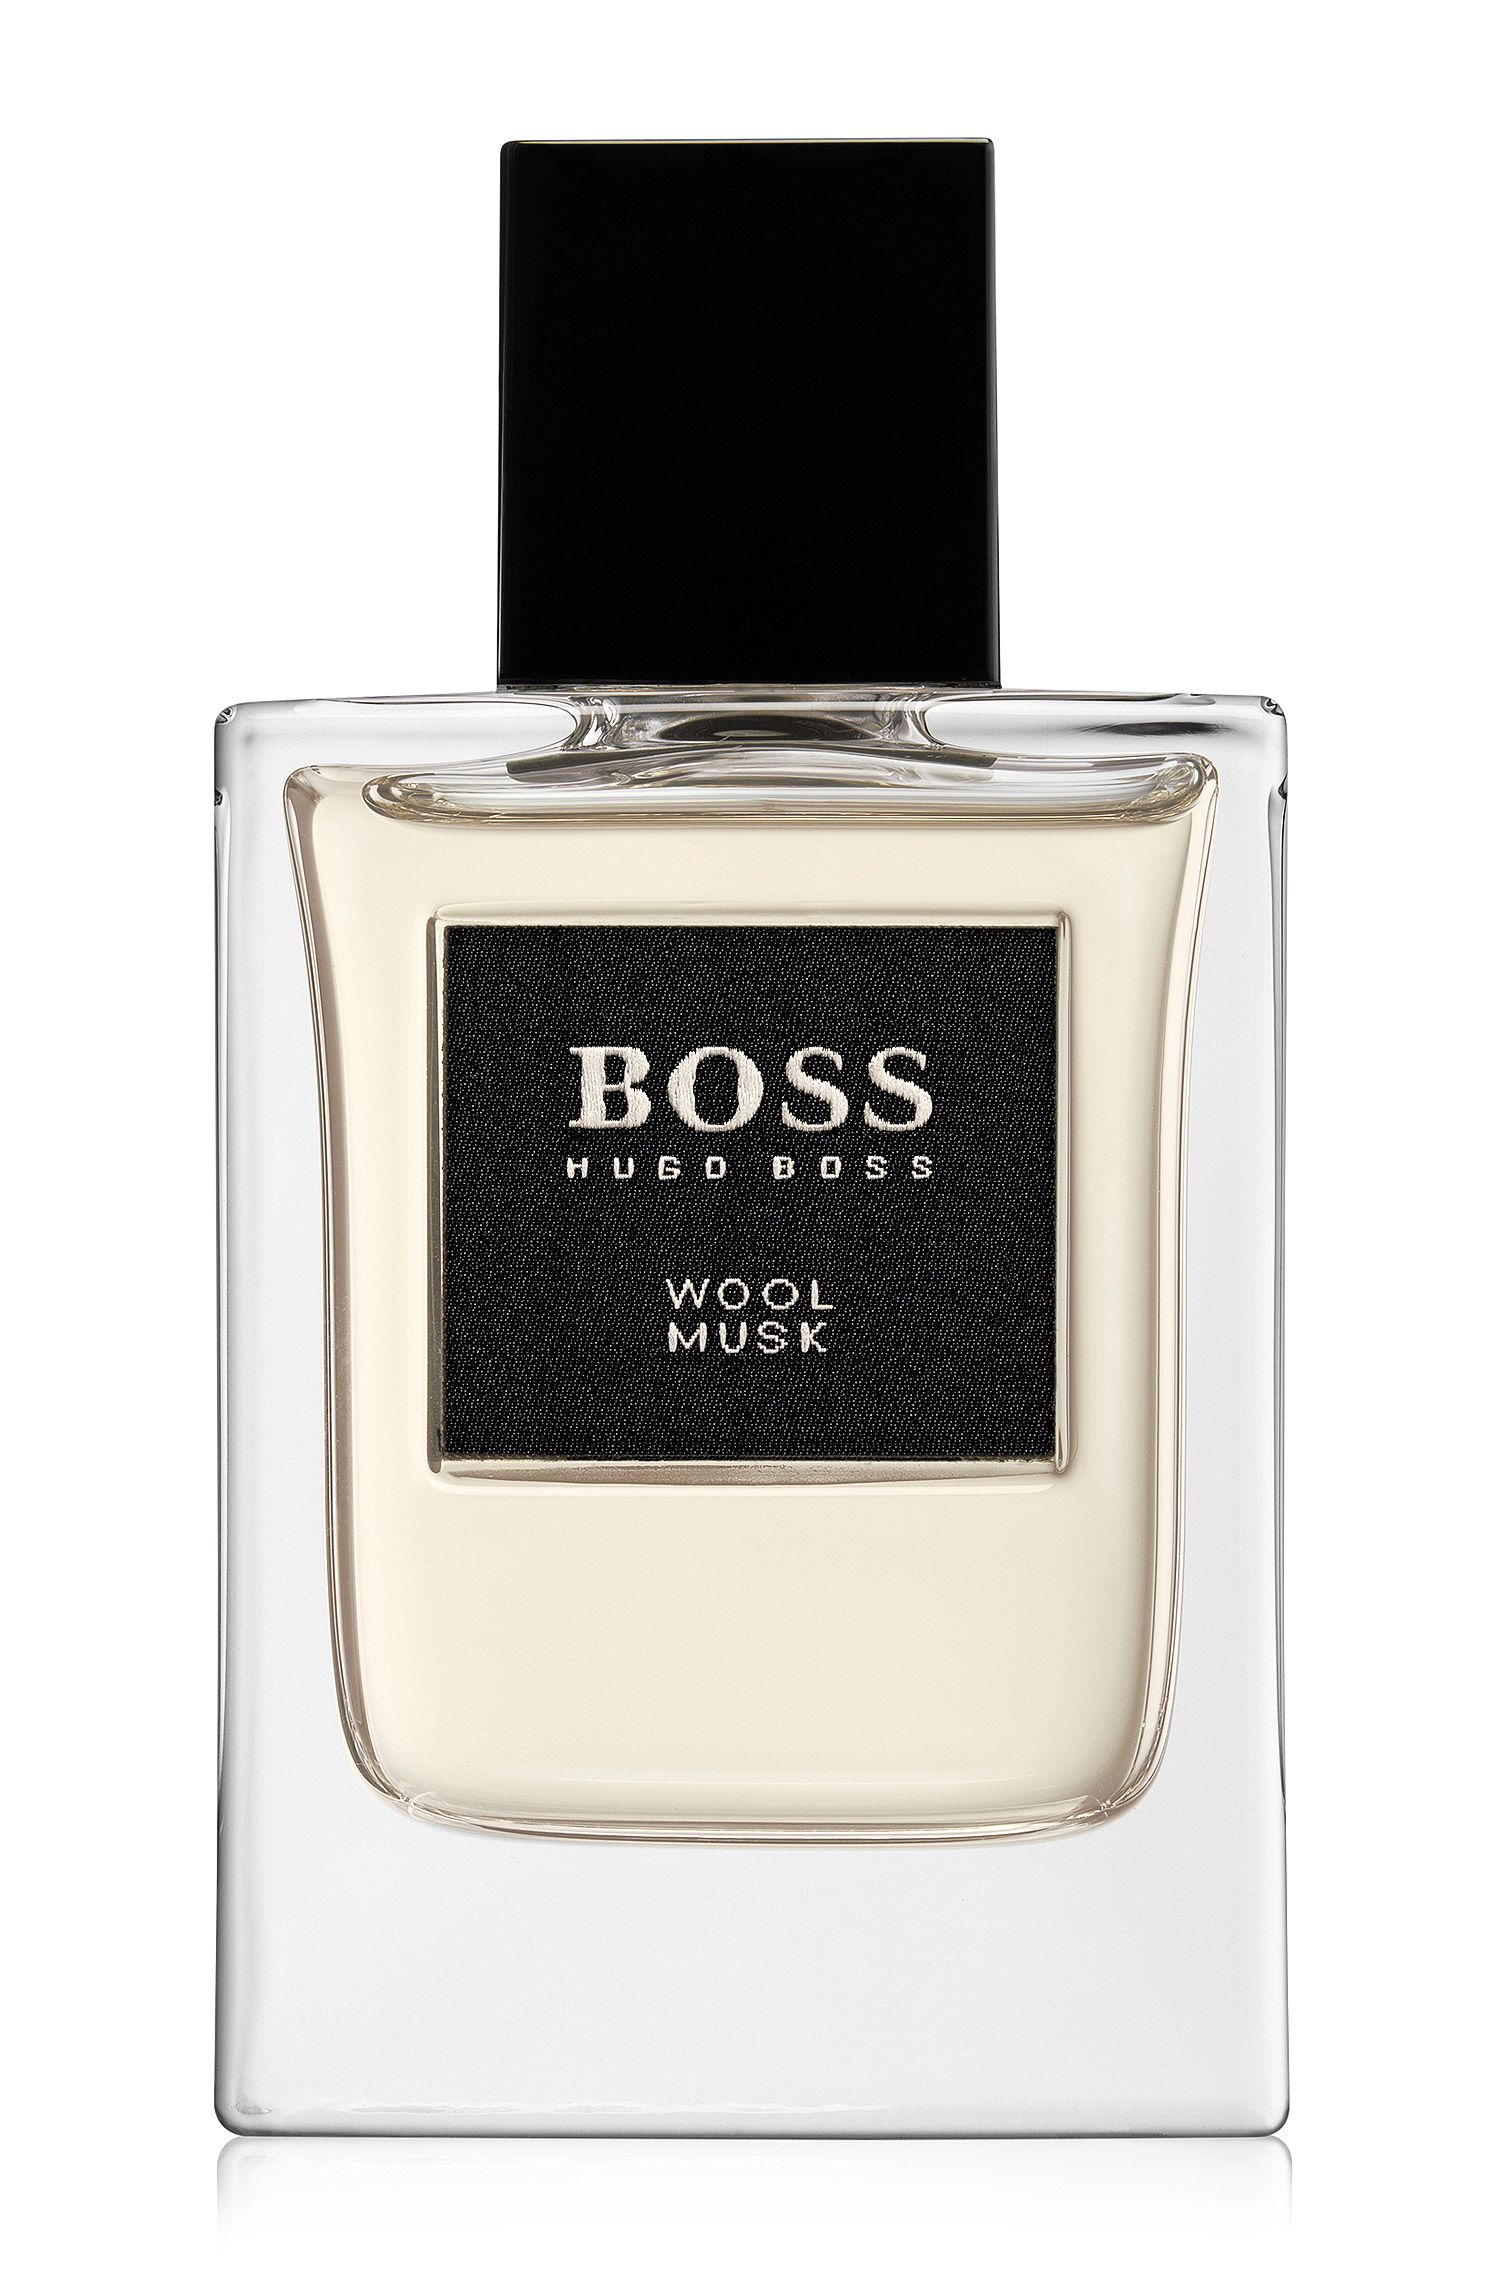 BOSS The Collection - Wool Musk Eau de Parfum